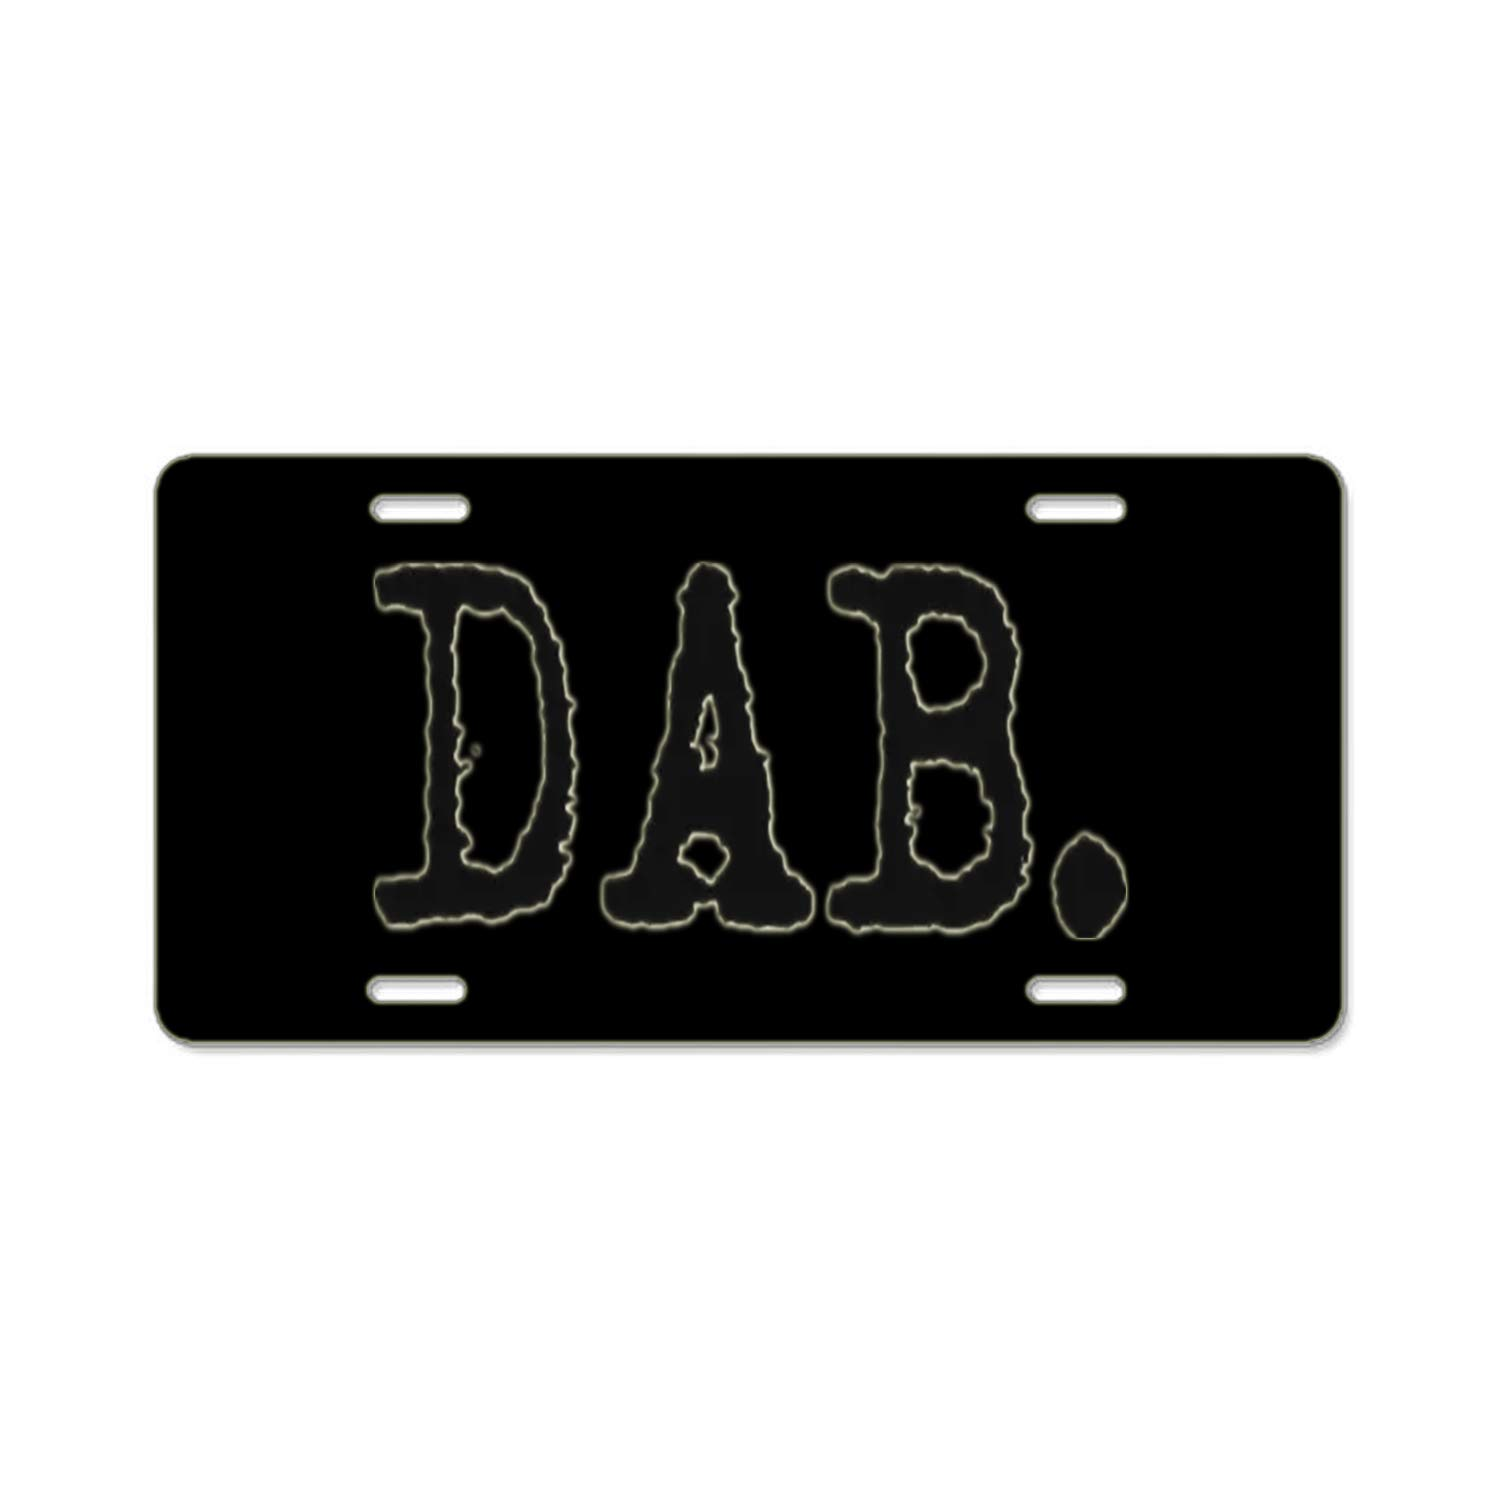 Bchengquch Unique Popular Design Plate Frame Custom Did we just Become Best Friends yep License Plate Metal Car Tag 12 x 6 Inch